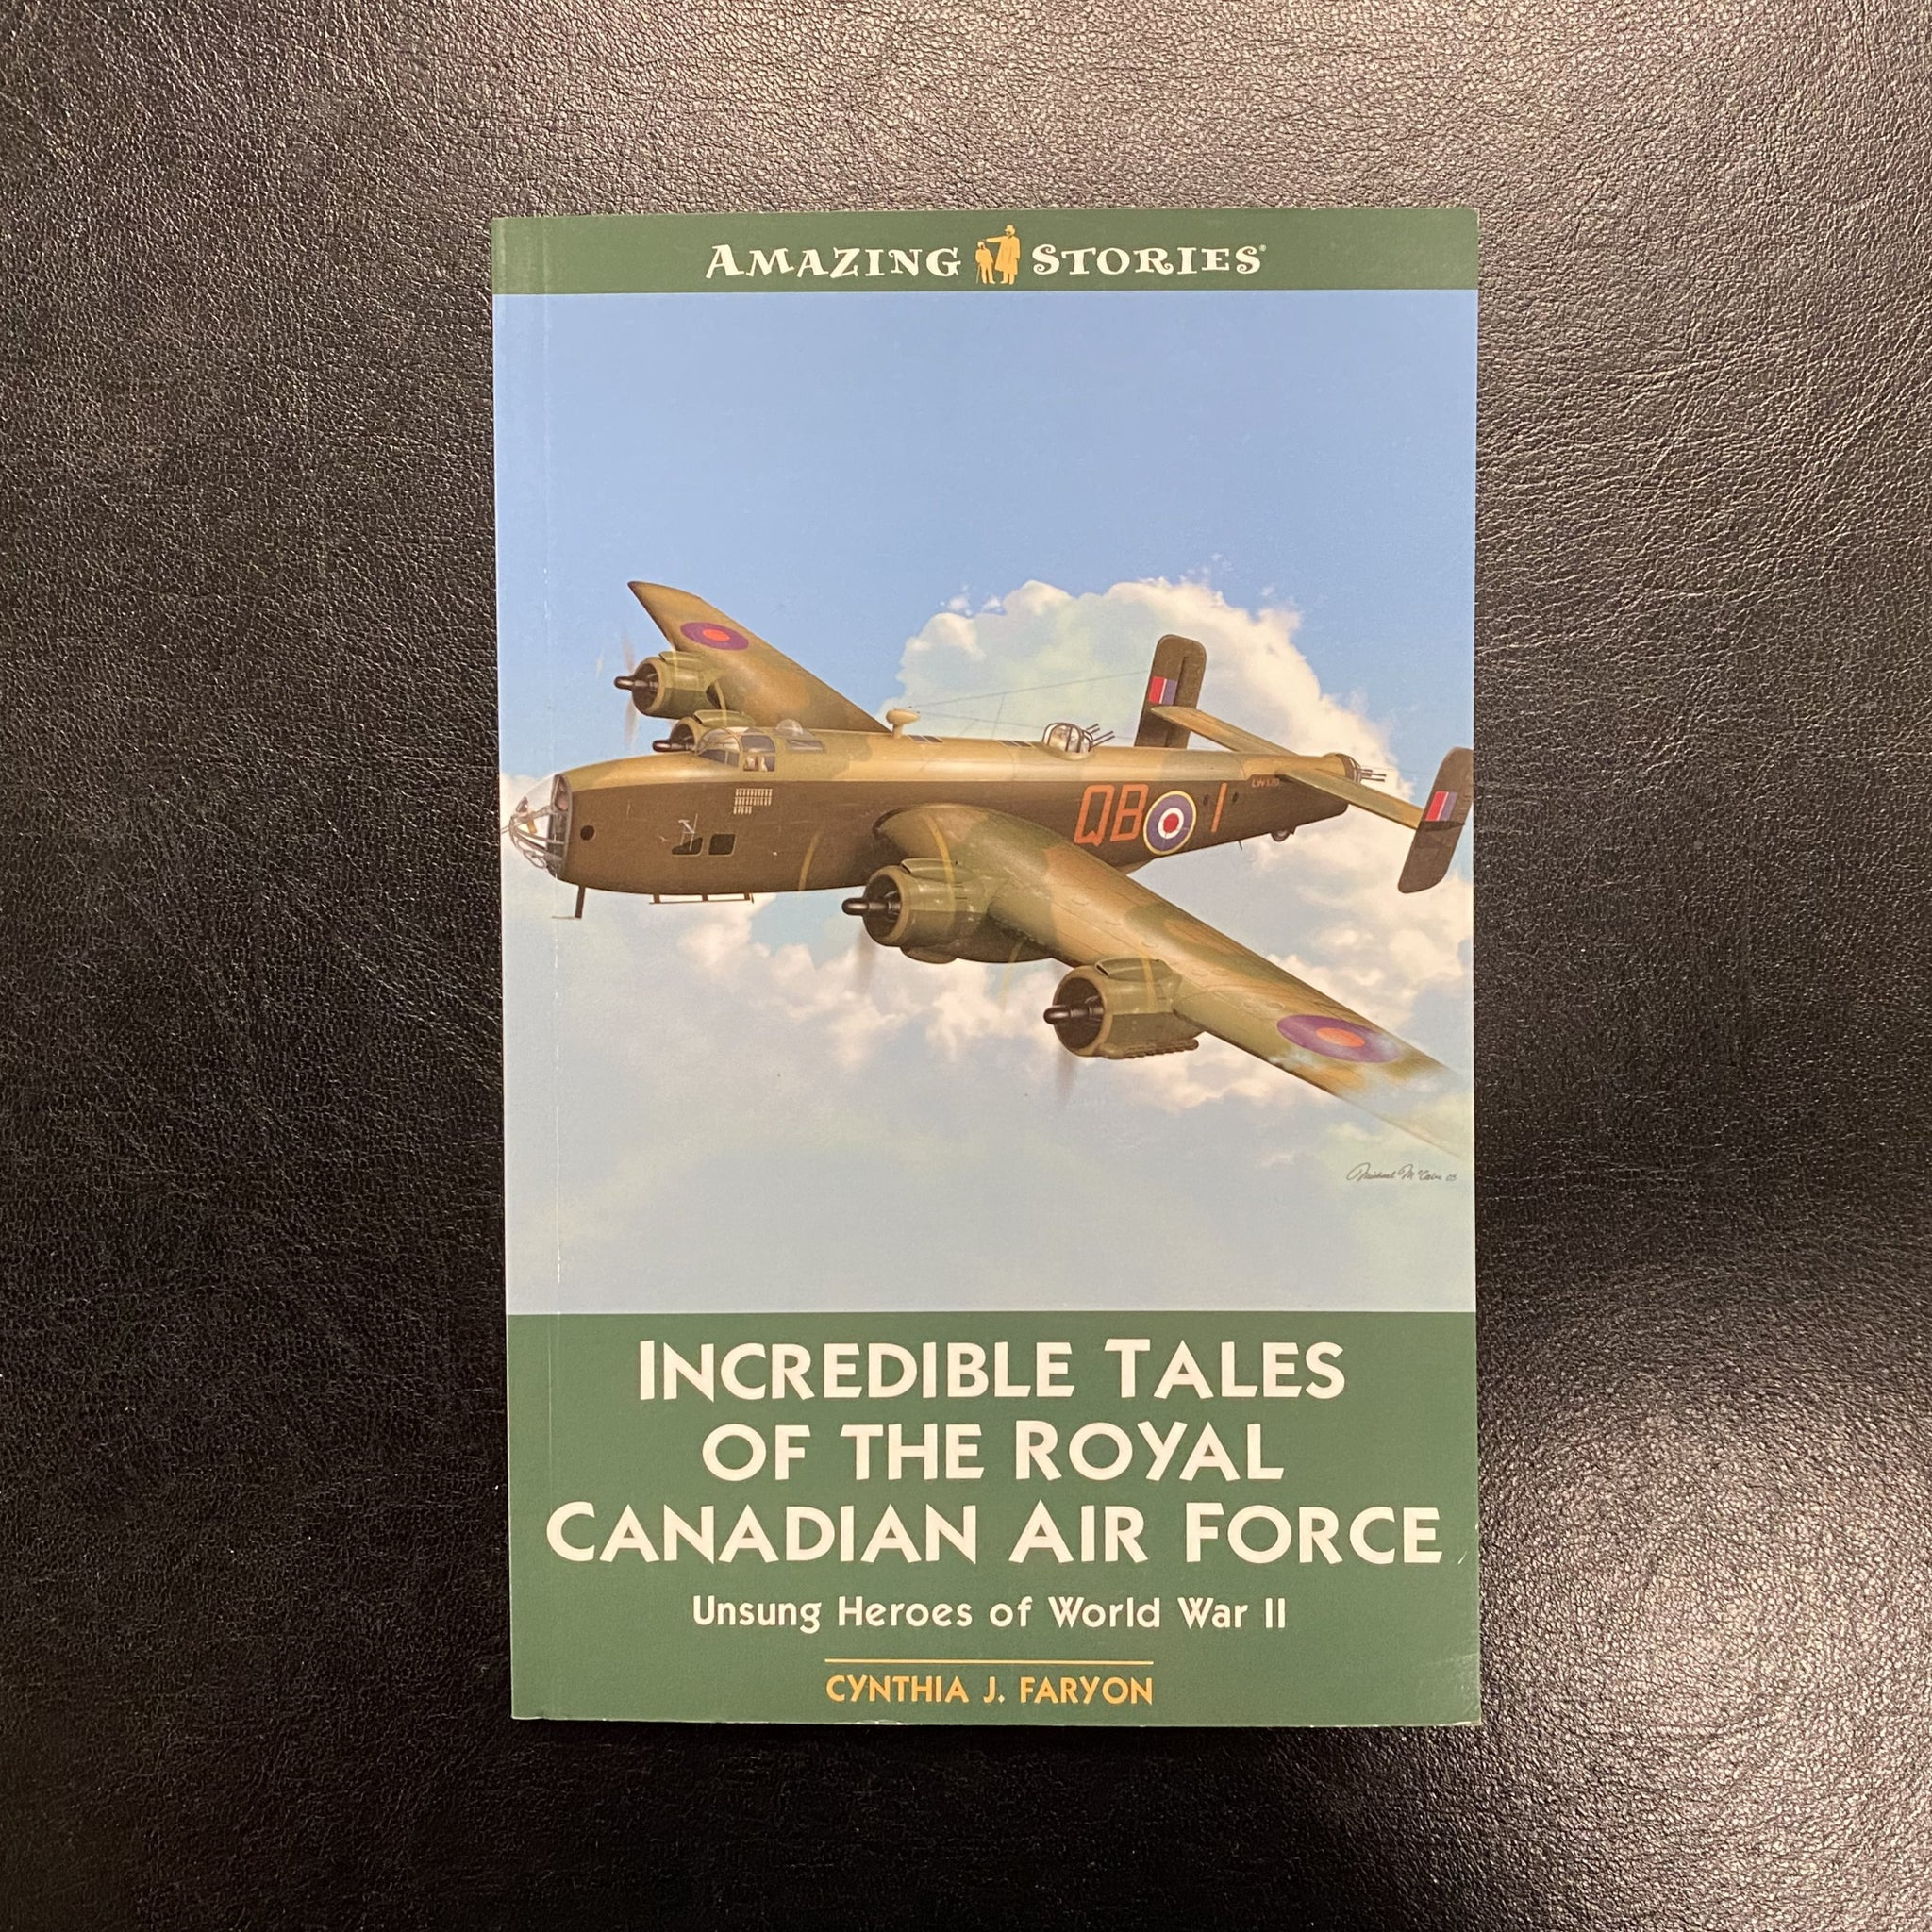 Incredible Tales of the Royal Canadian Air Force by Cynthia J. Faryon